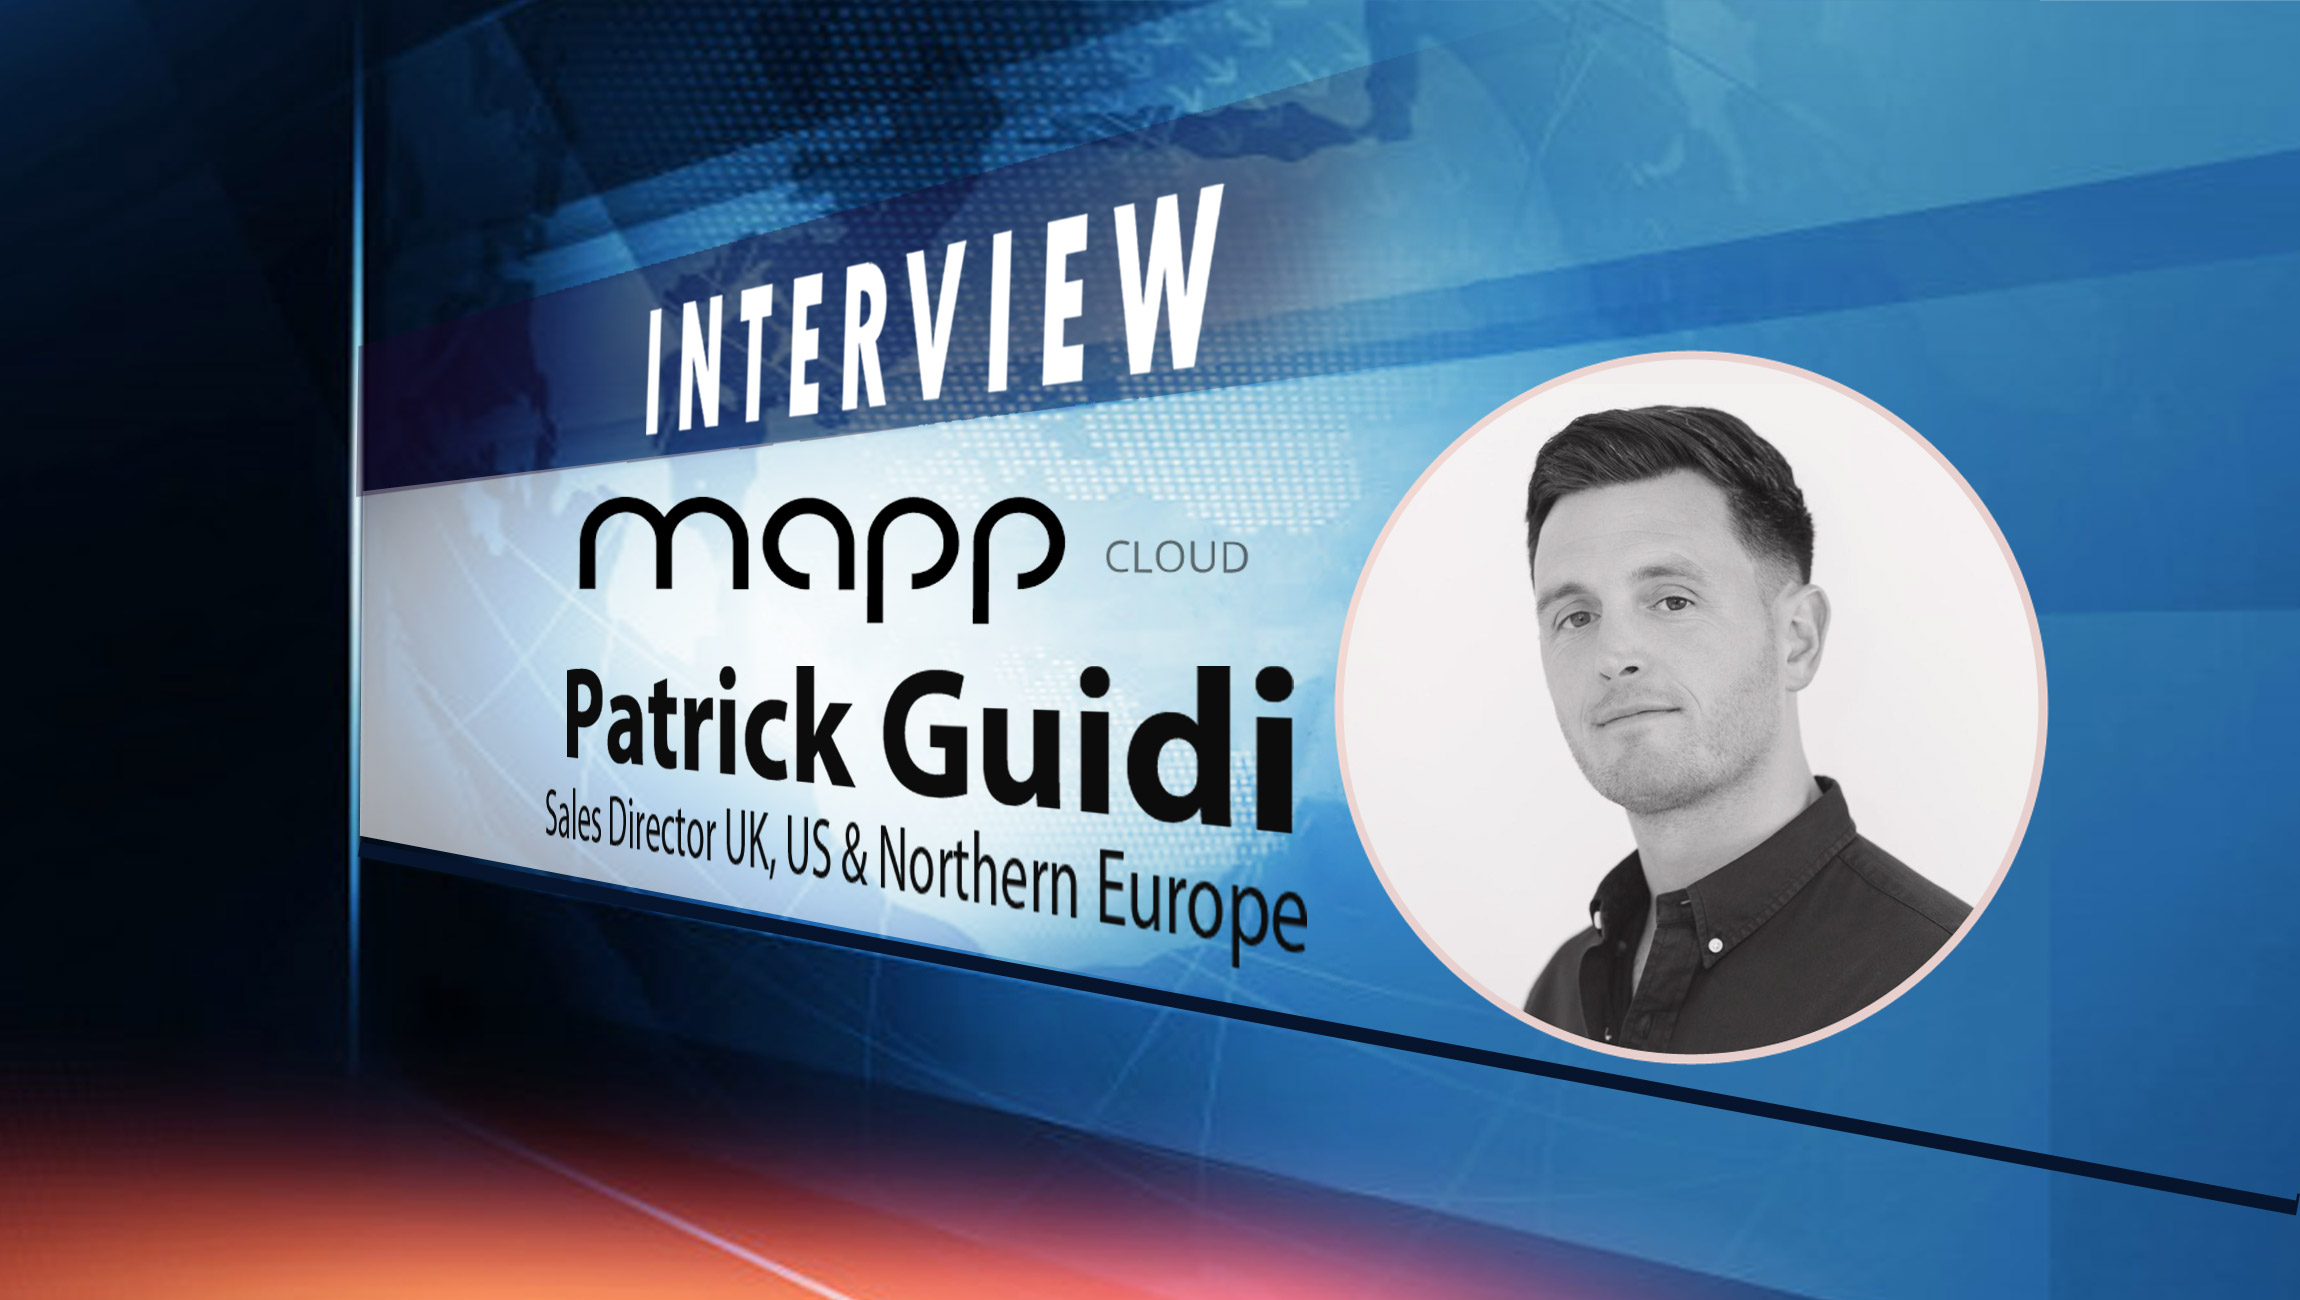 SalesTechStar Interview with Patrick Guidi, Sales Director UK, US & Northern Europe at Mapp Digital